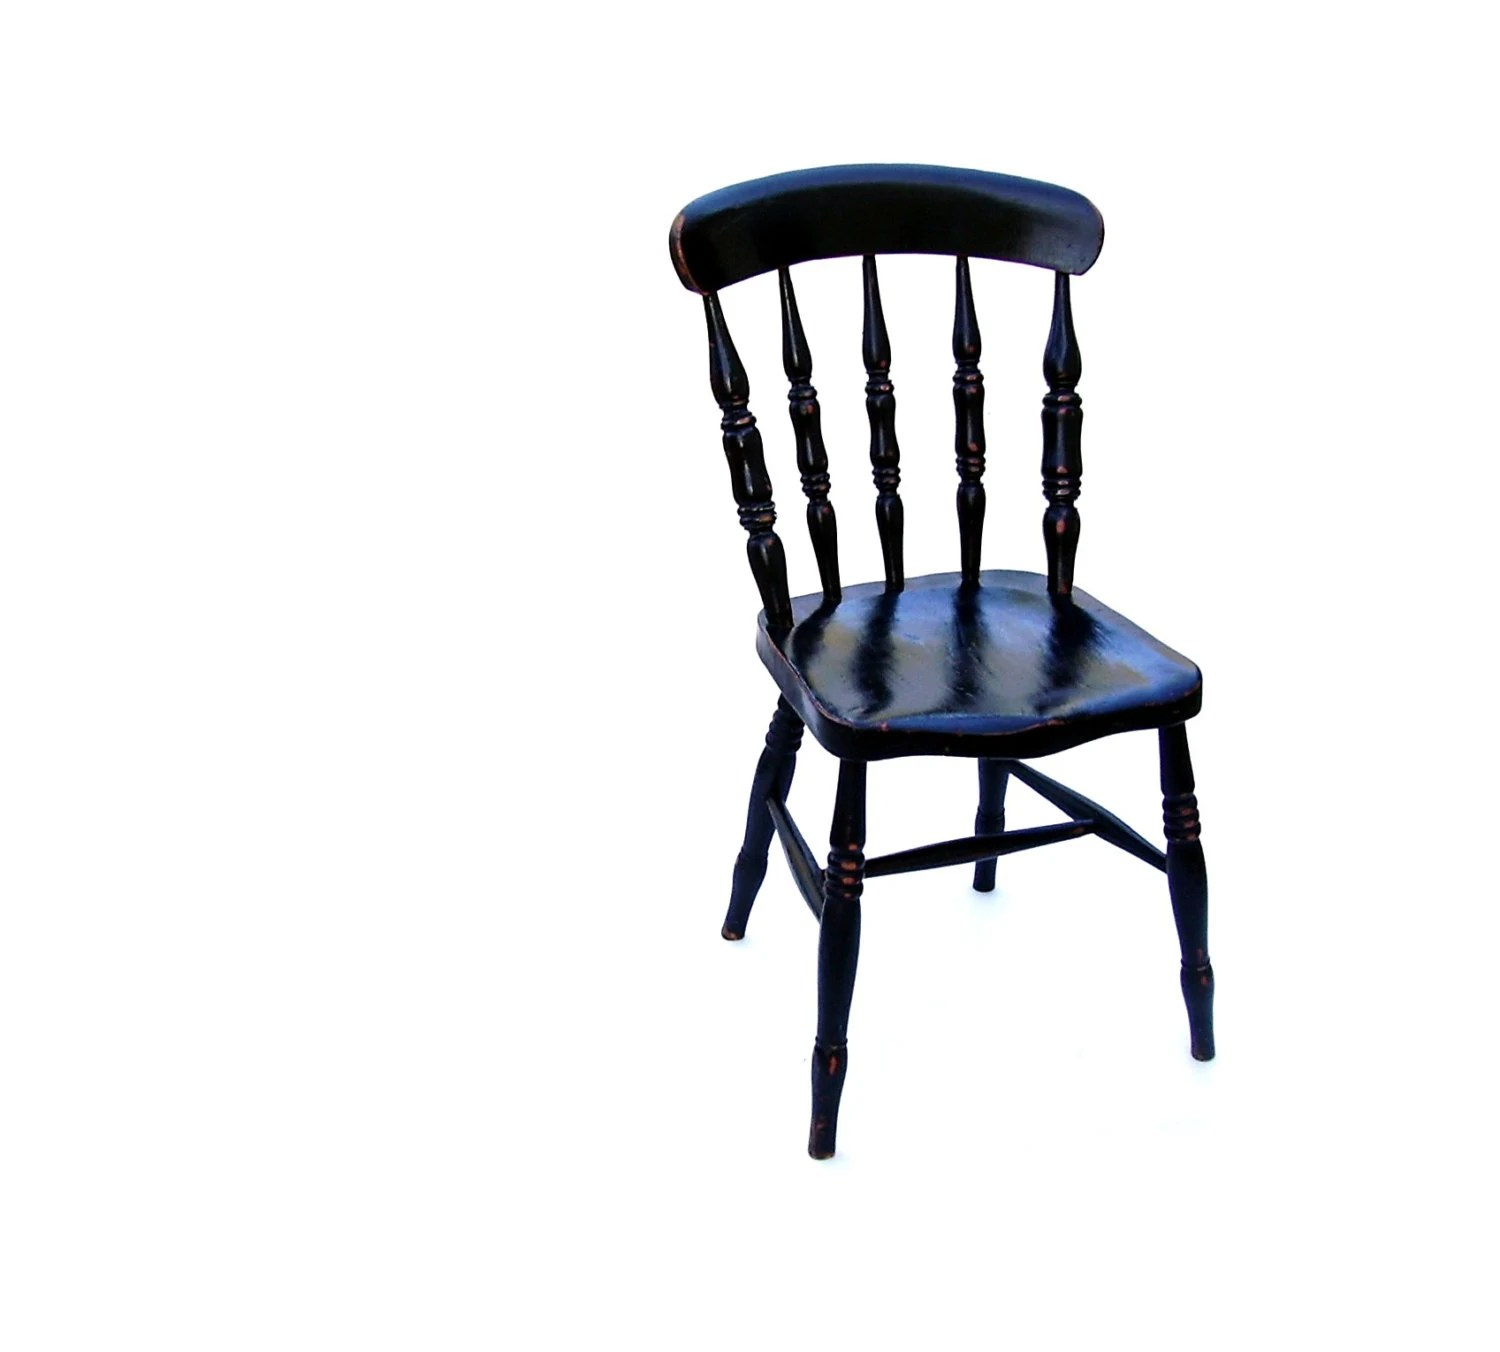 black spindle chair office yishun antique wooden windsor painted wood